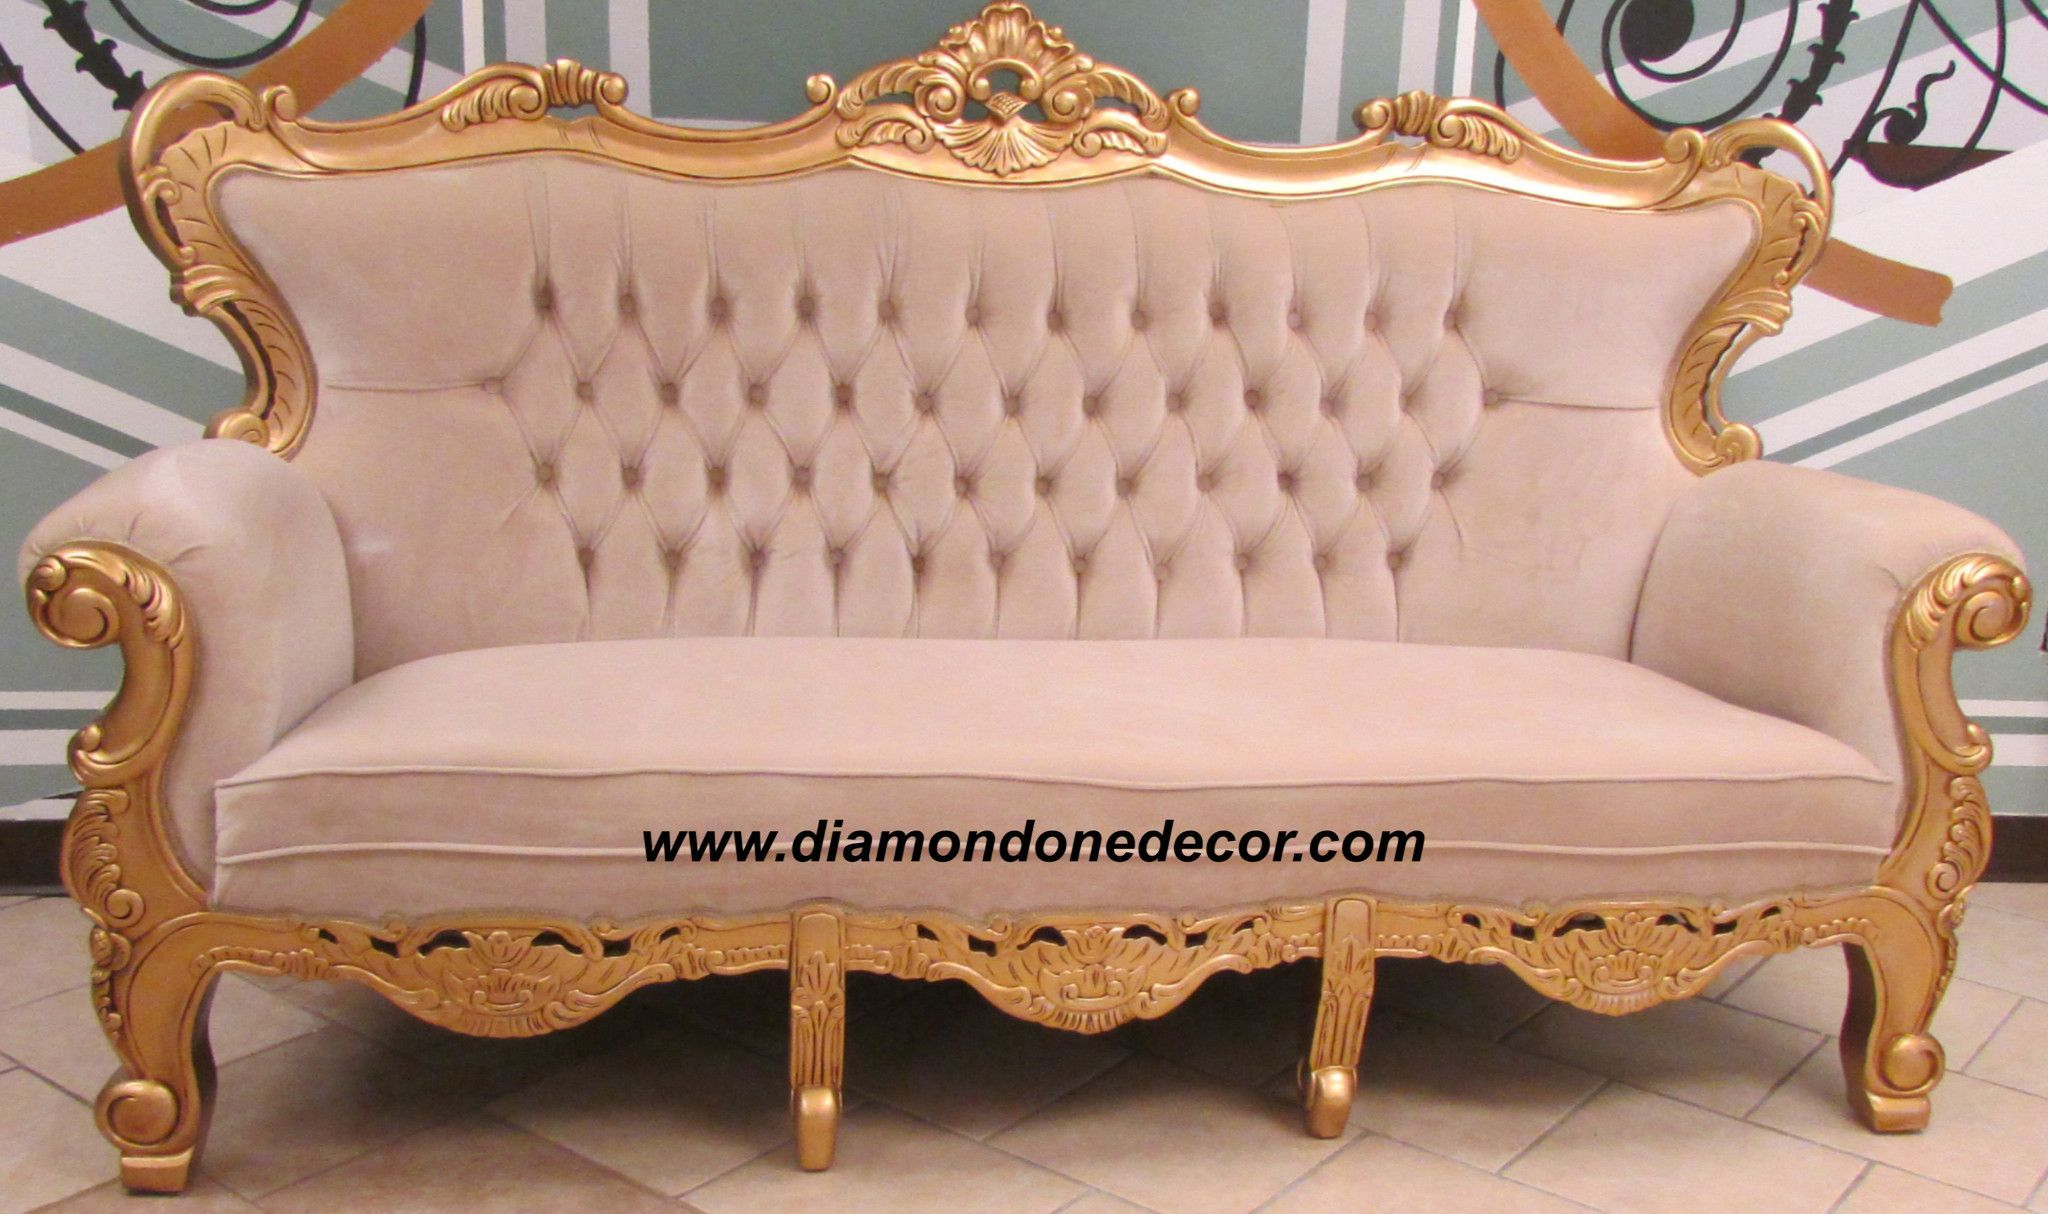 Reydele Fabulous Baroque French Reproduction Louis Xv Rococo Cream Victorian Sofa Matching Chair And Love Seat Are Also Available Imported